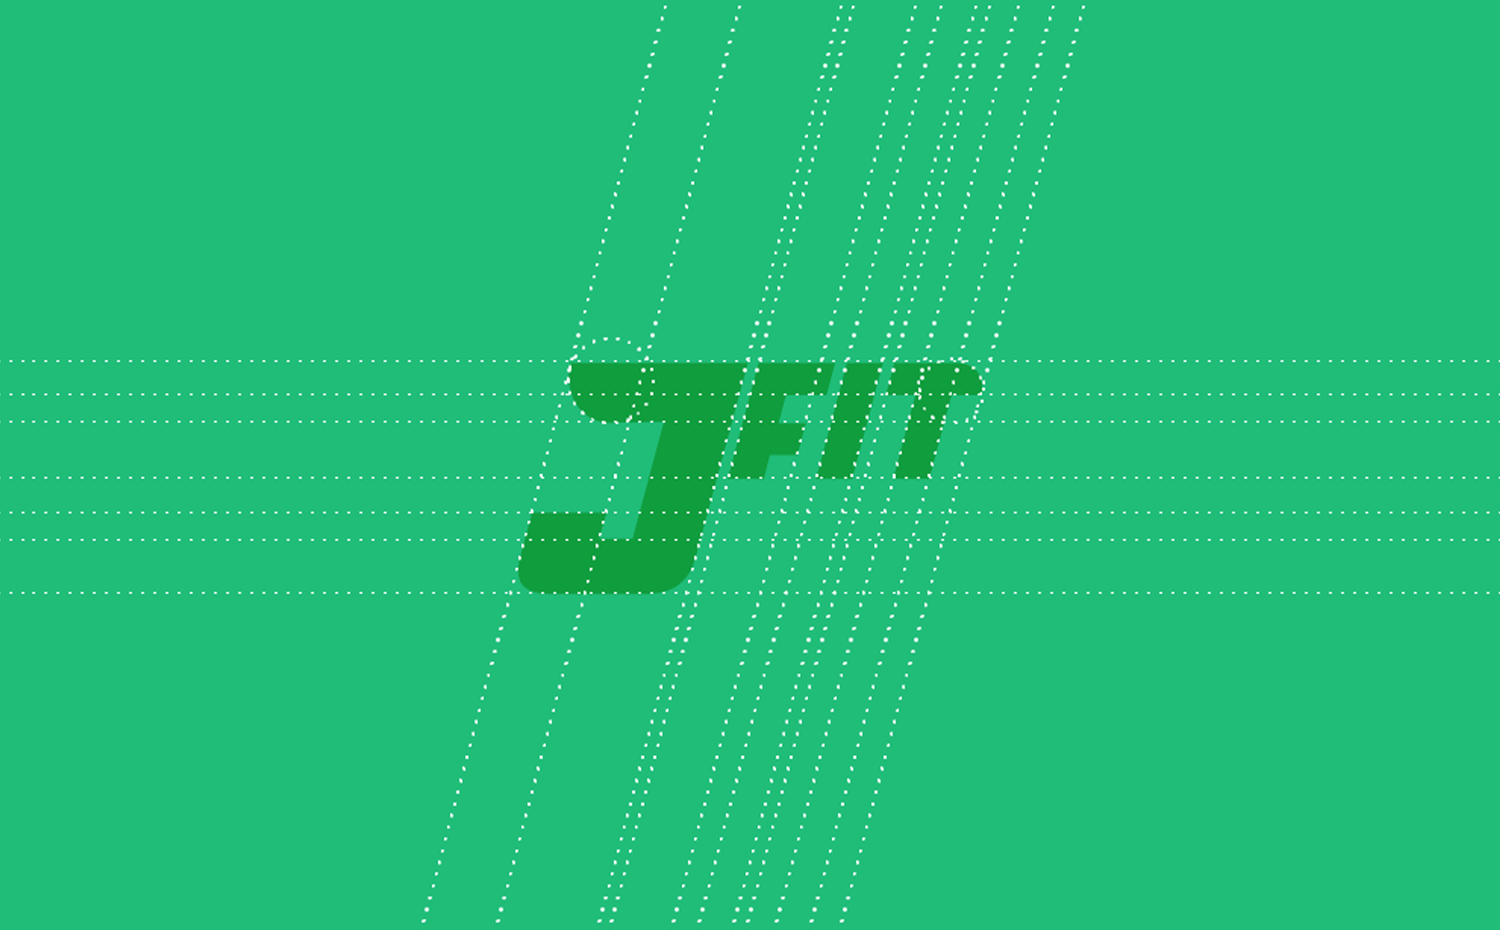 JFIT-CASESTUDY_CONSTRUCT.png